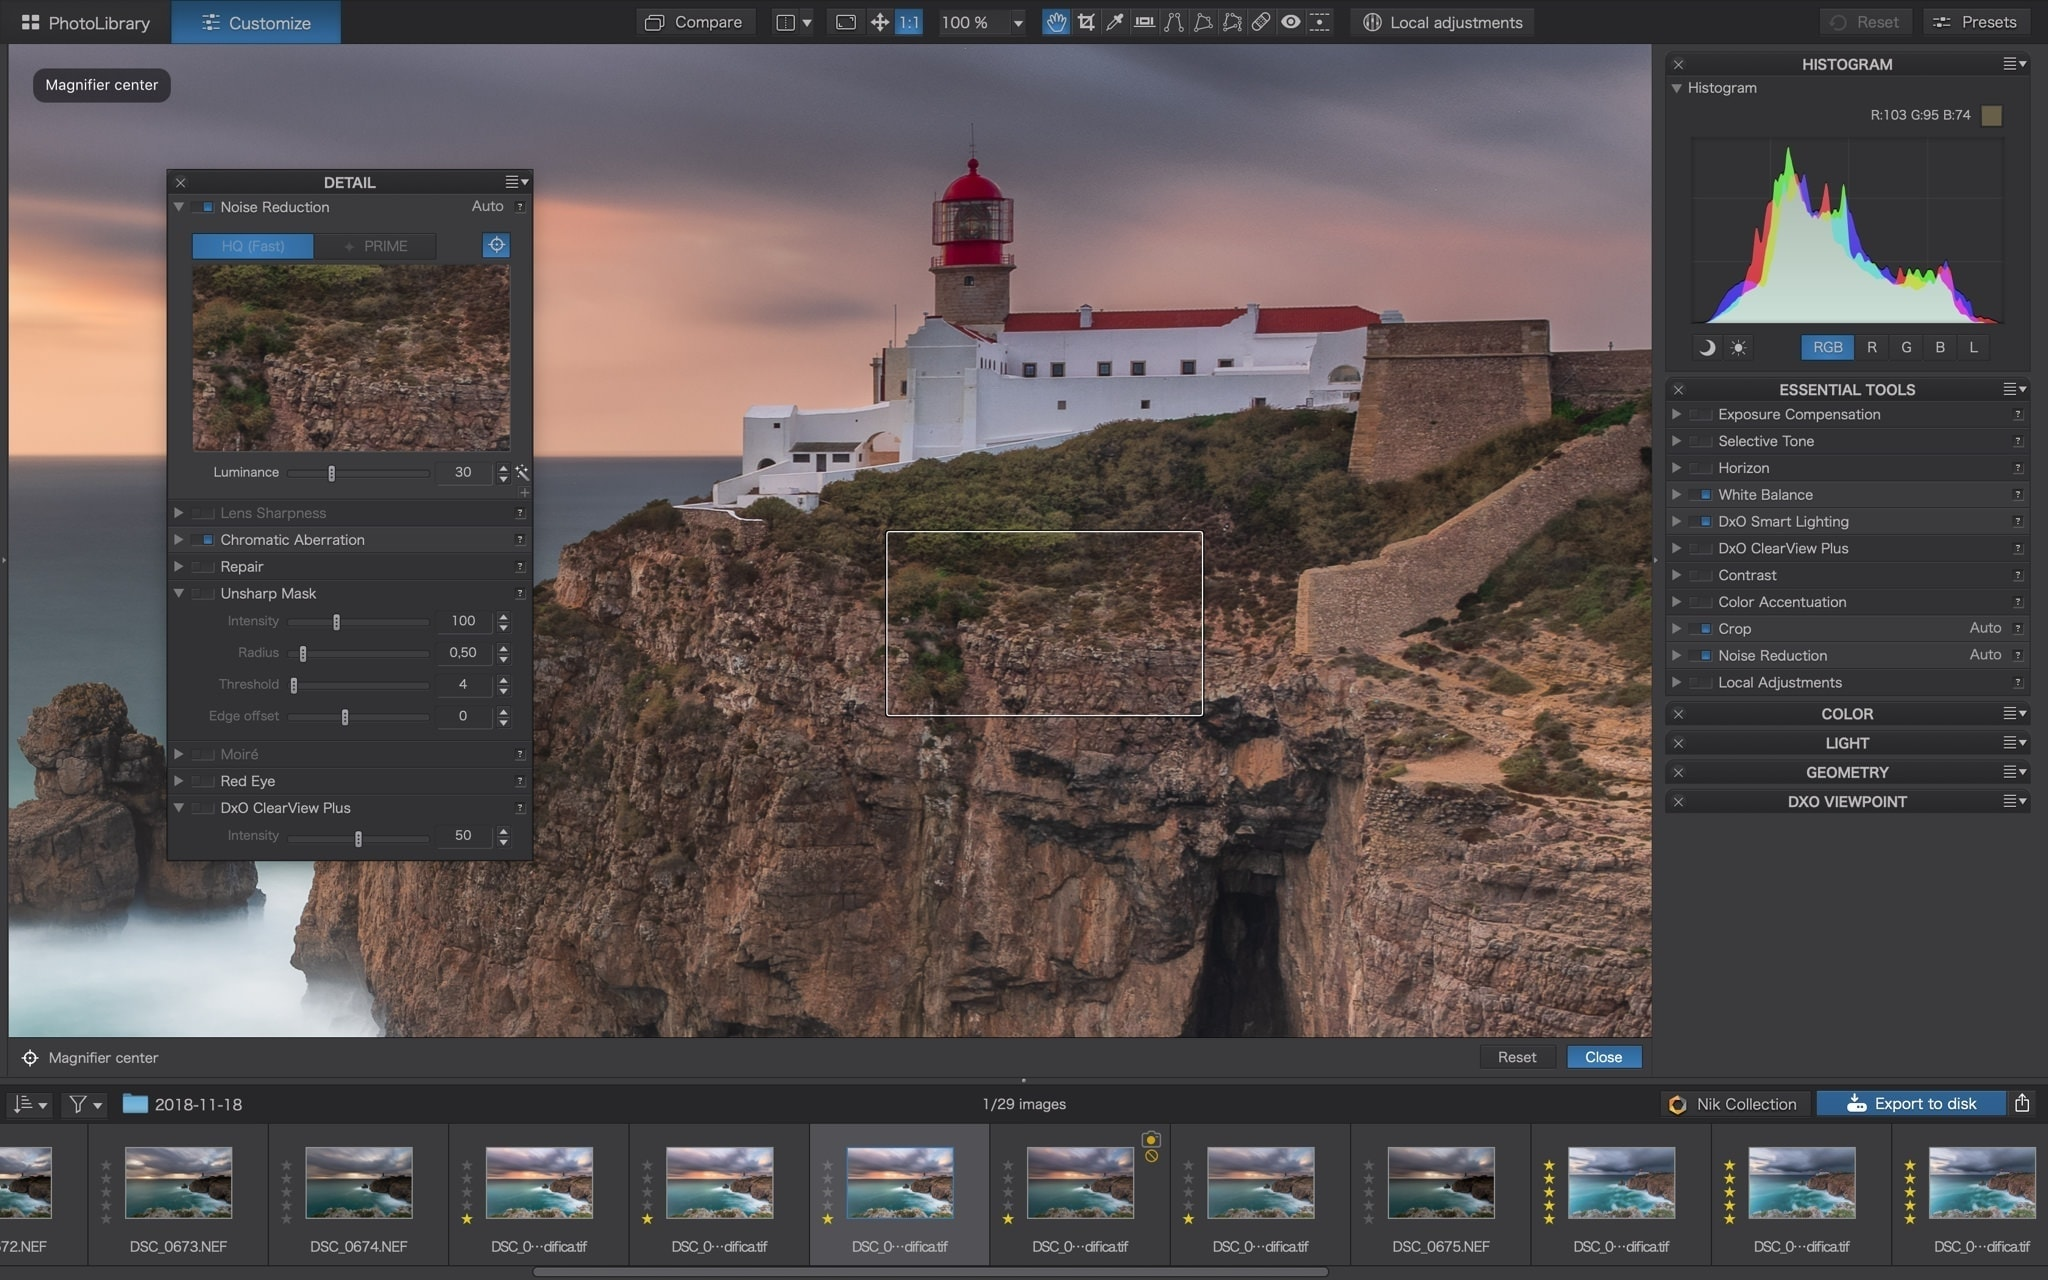 PhotoLab 3 DxO Sharpening Contrast Detail Francesco Gola review